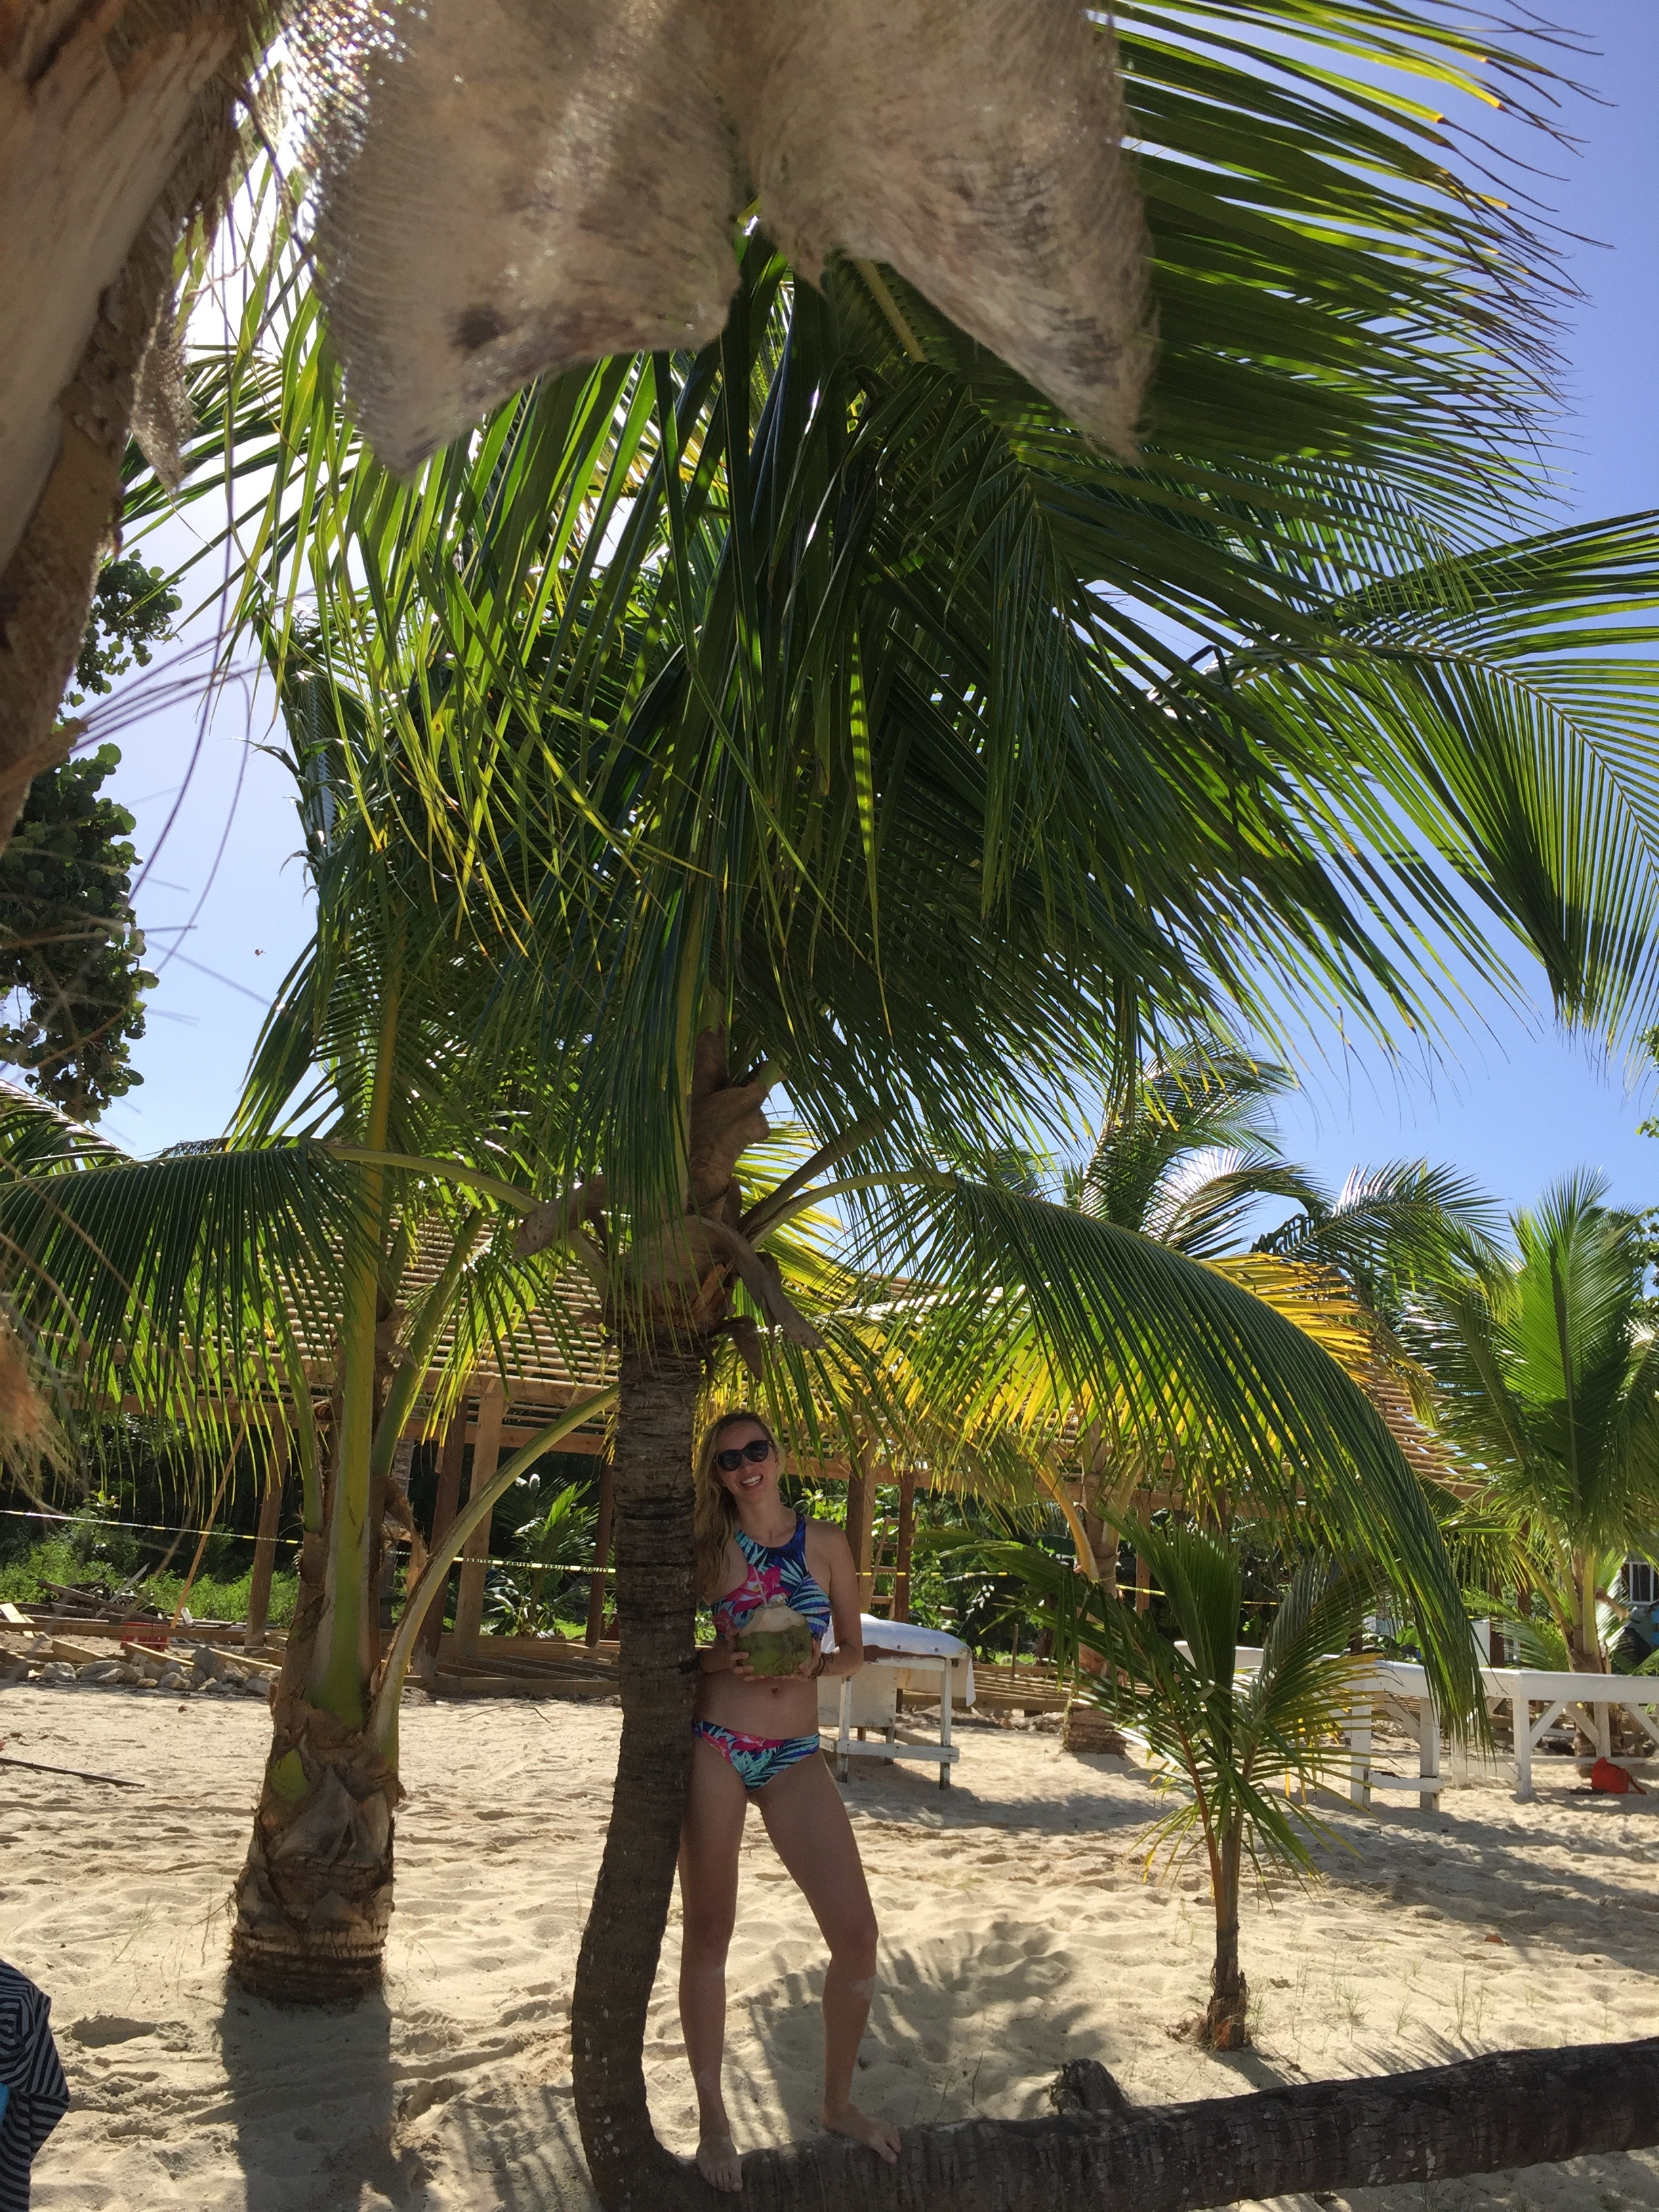 Can life get any better than coconuts and beaches?